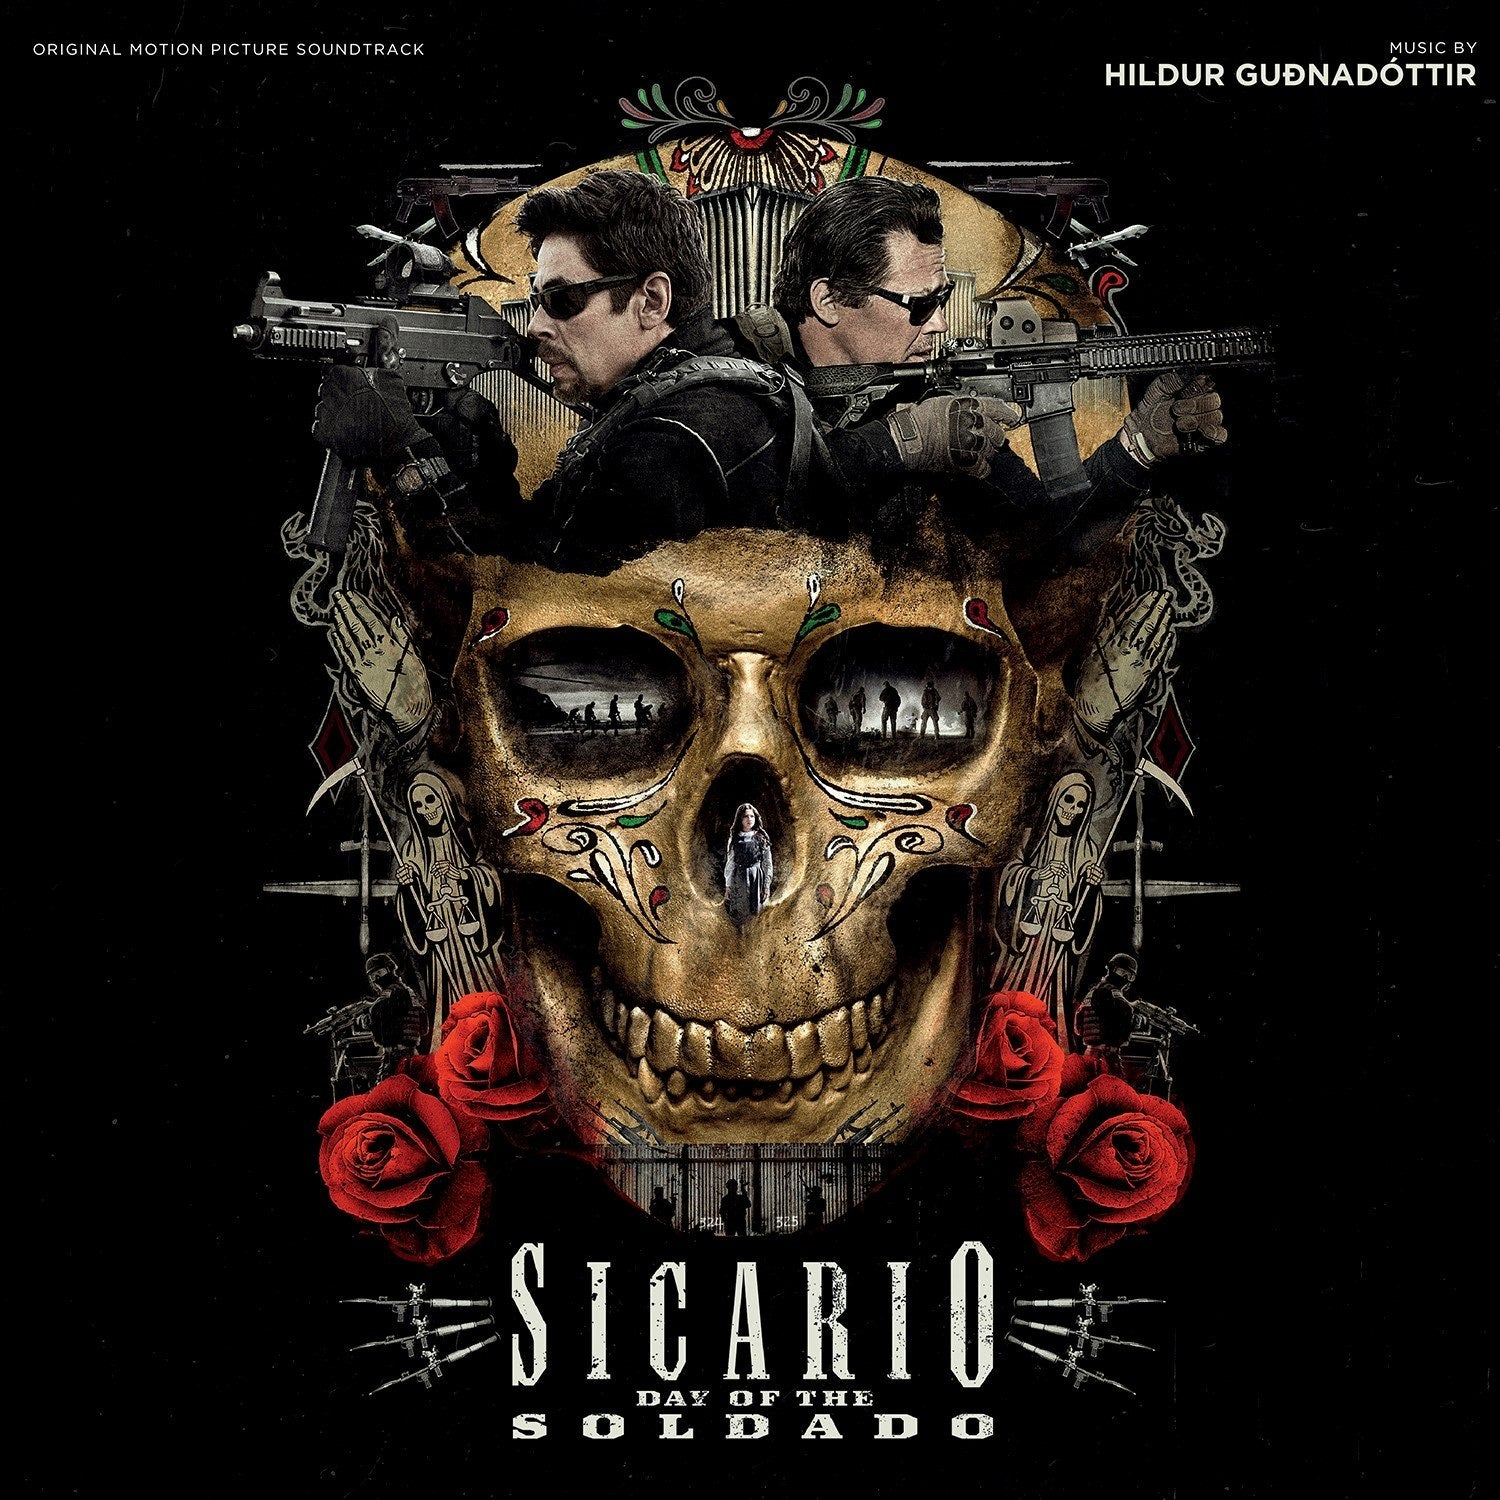 OST: Sicario: Day Of The Soldado - Hildur Gudnadottir